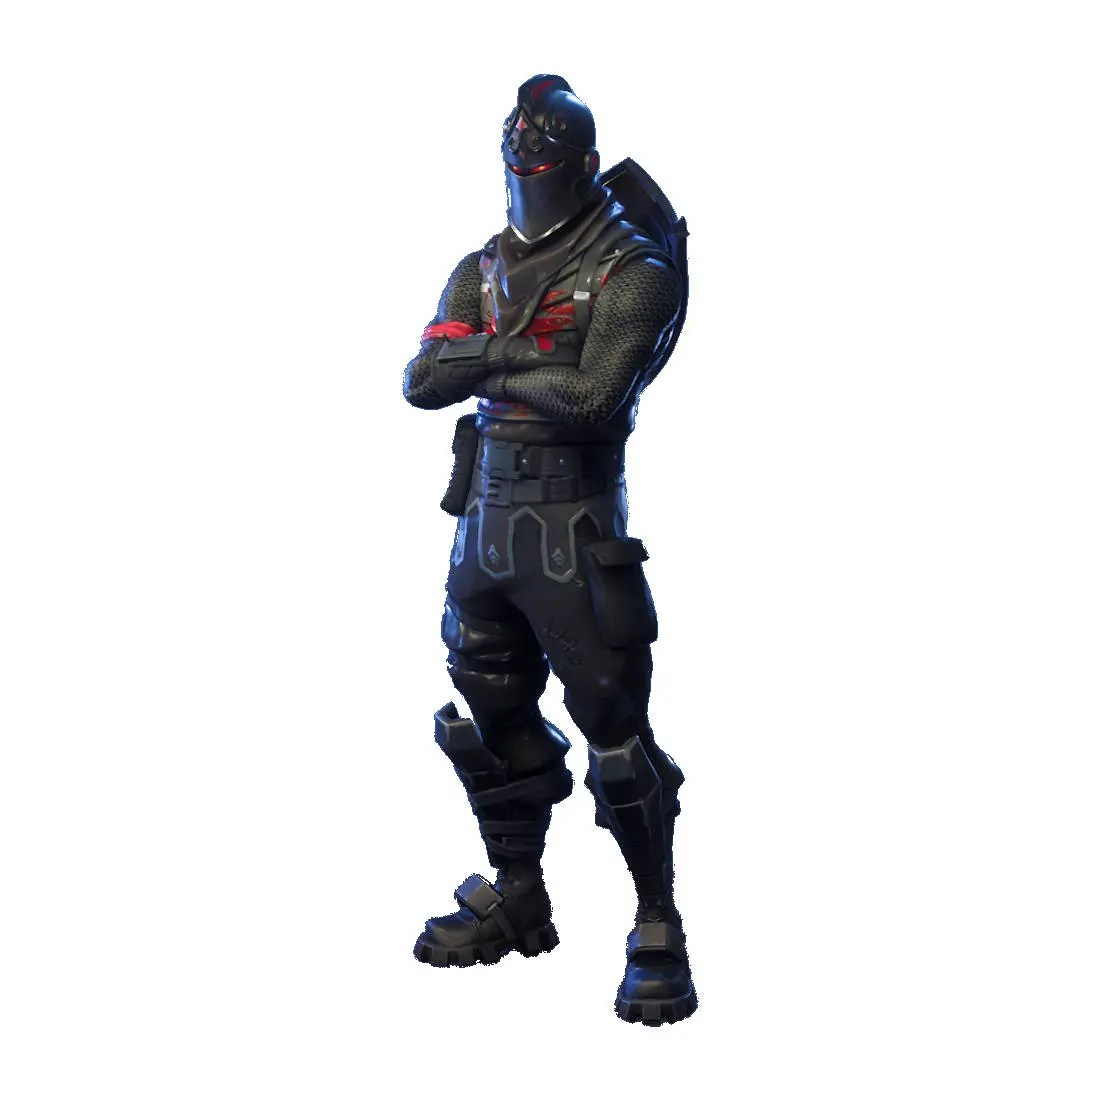 Iphone X Fortnite Wallpapers Fortnite Black Knight Character Skin Sticker